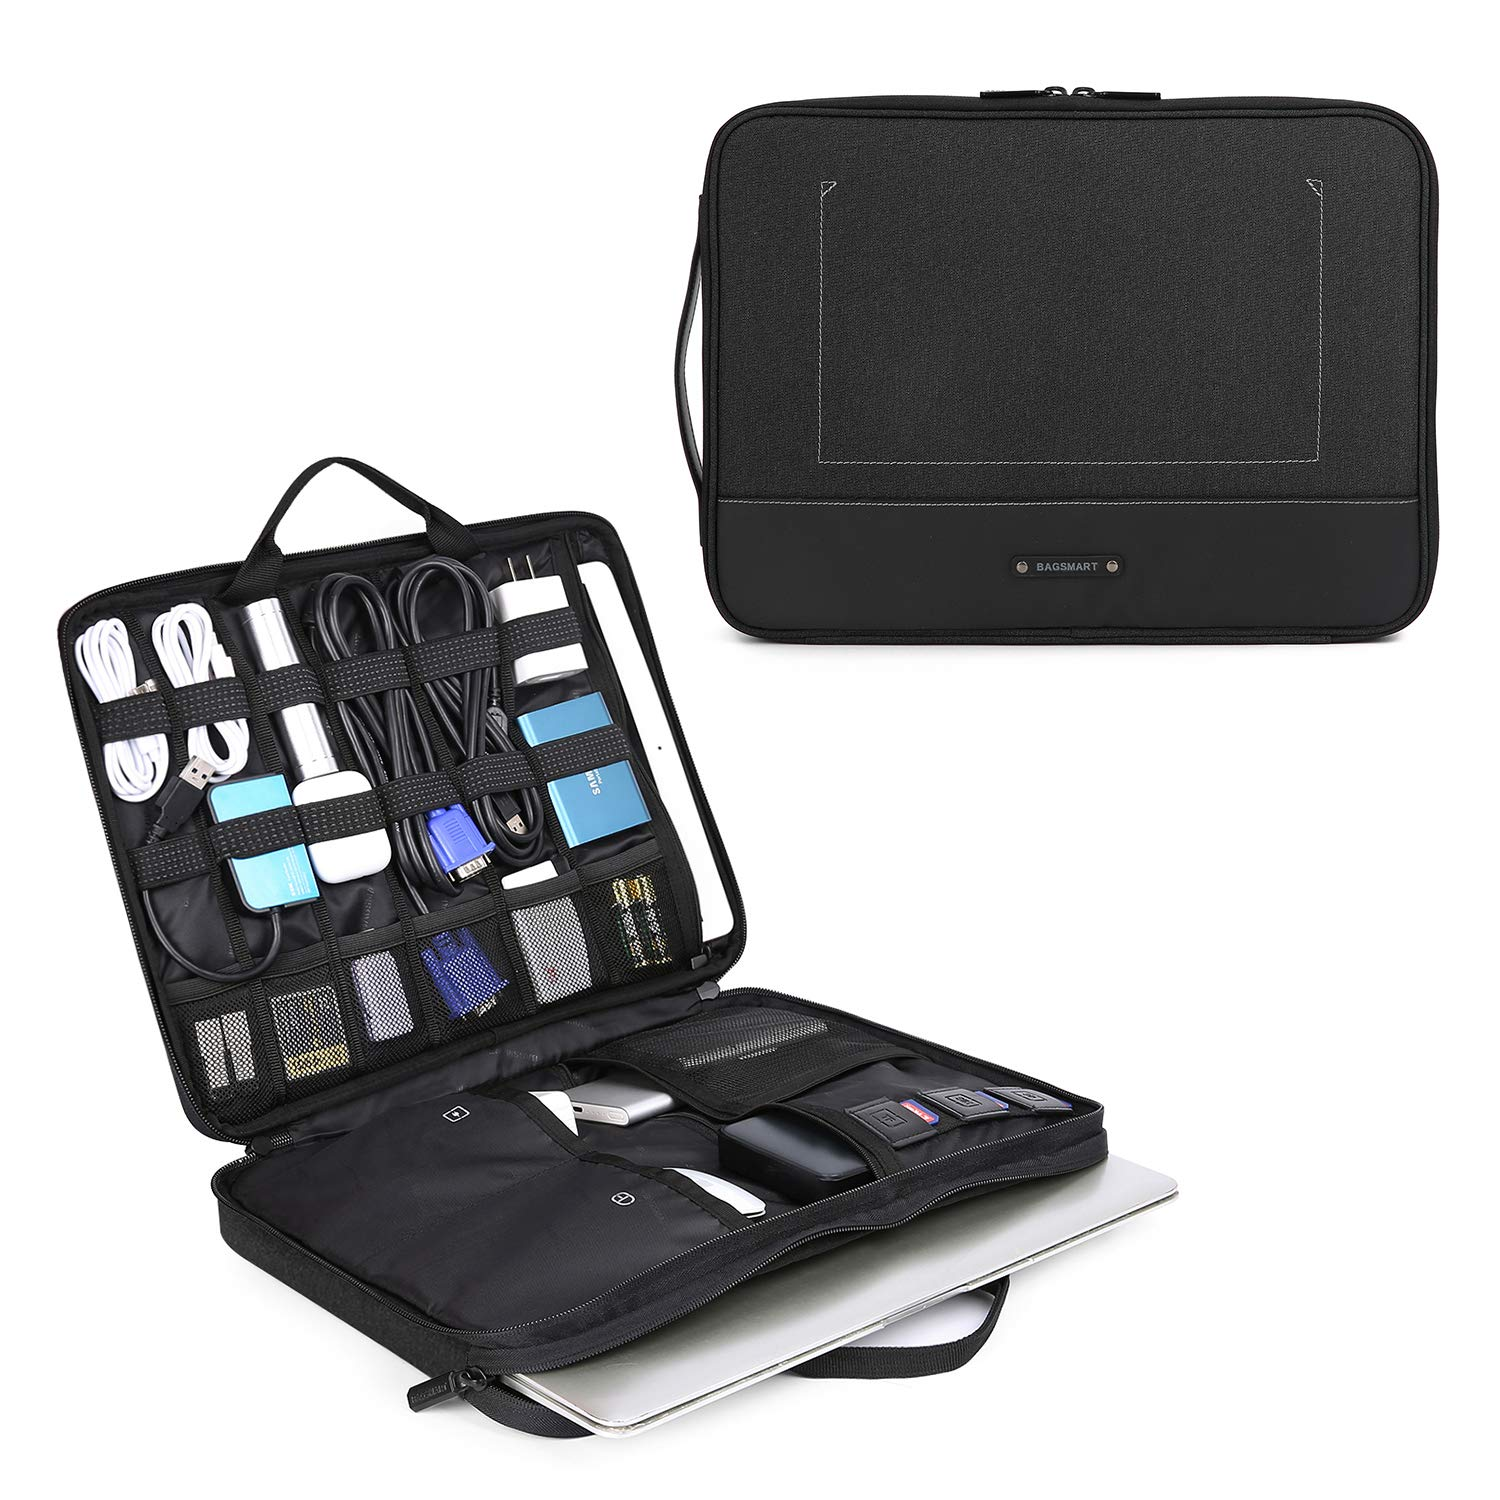 BAGSMART Travel Organizer Electronics Laptop Accessories Bag with 15 inch MacBook Pro Compartment, for Cable, Adapter, Hard Drives, 12.9 inch iPad Pro, Black